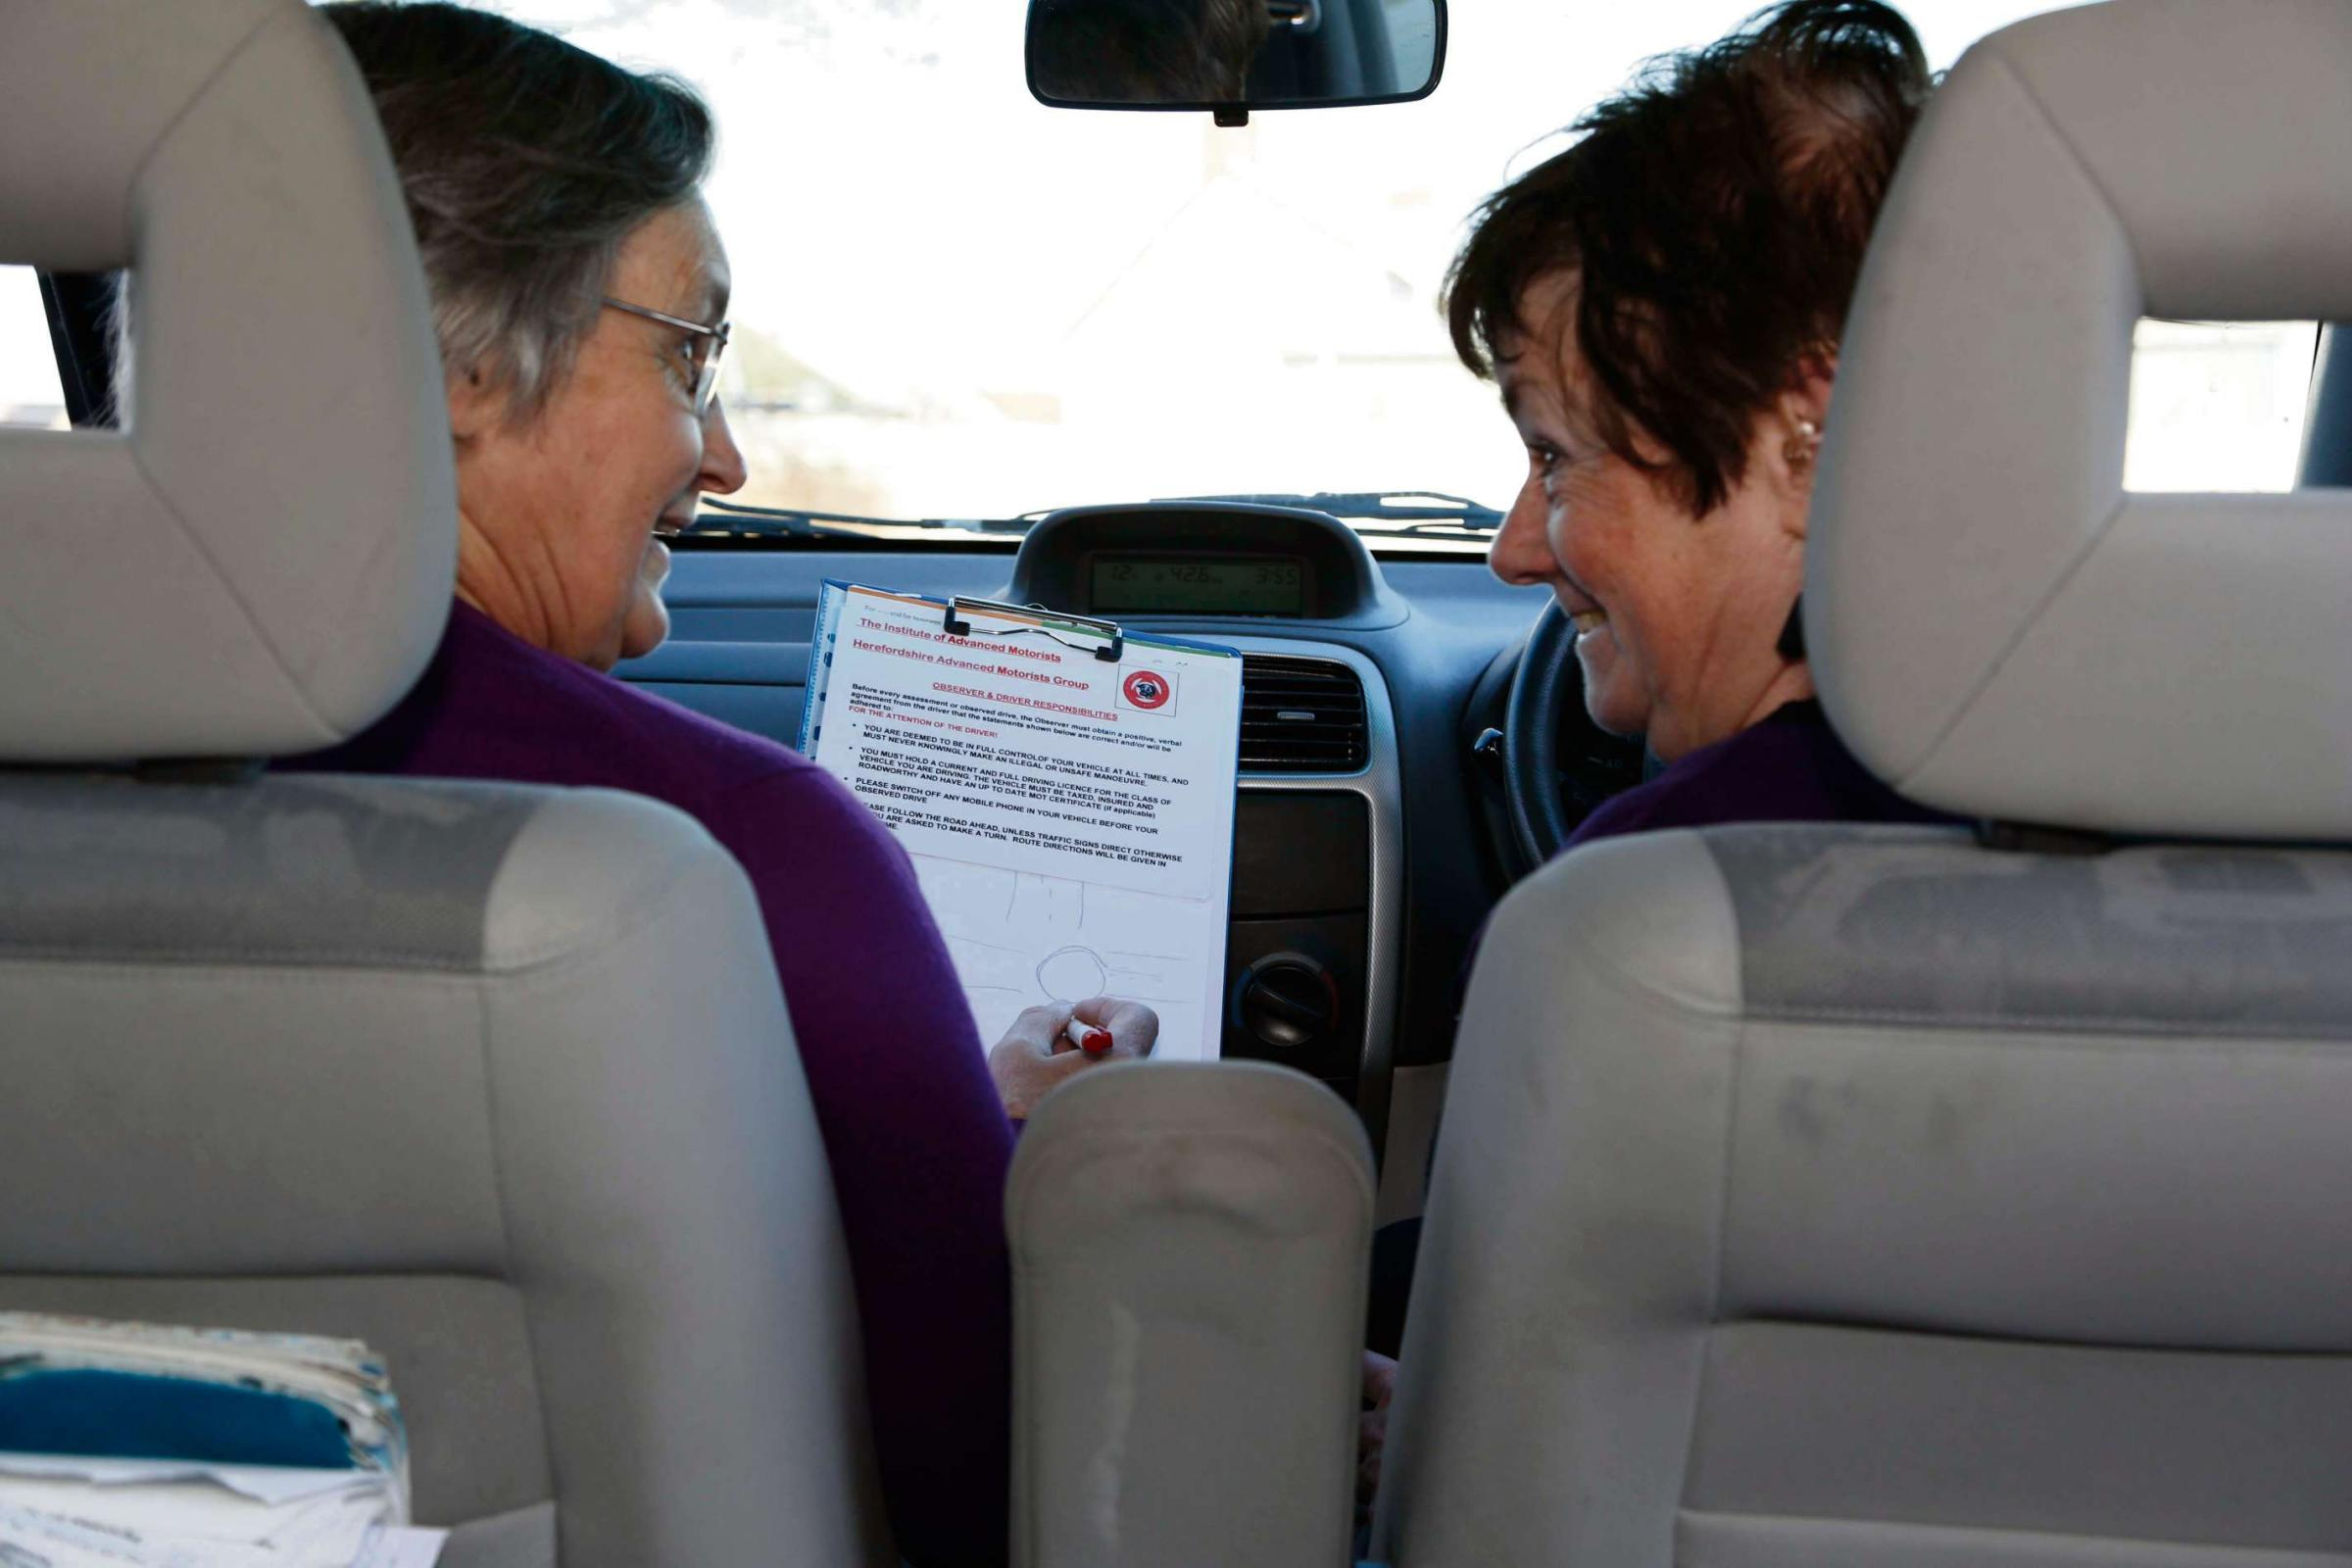 Older drivers invited to brush up on their driving skills on course